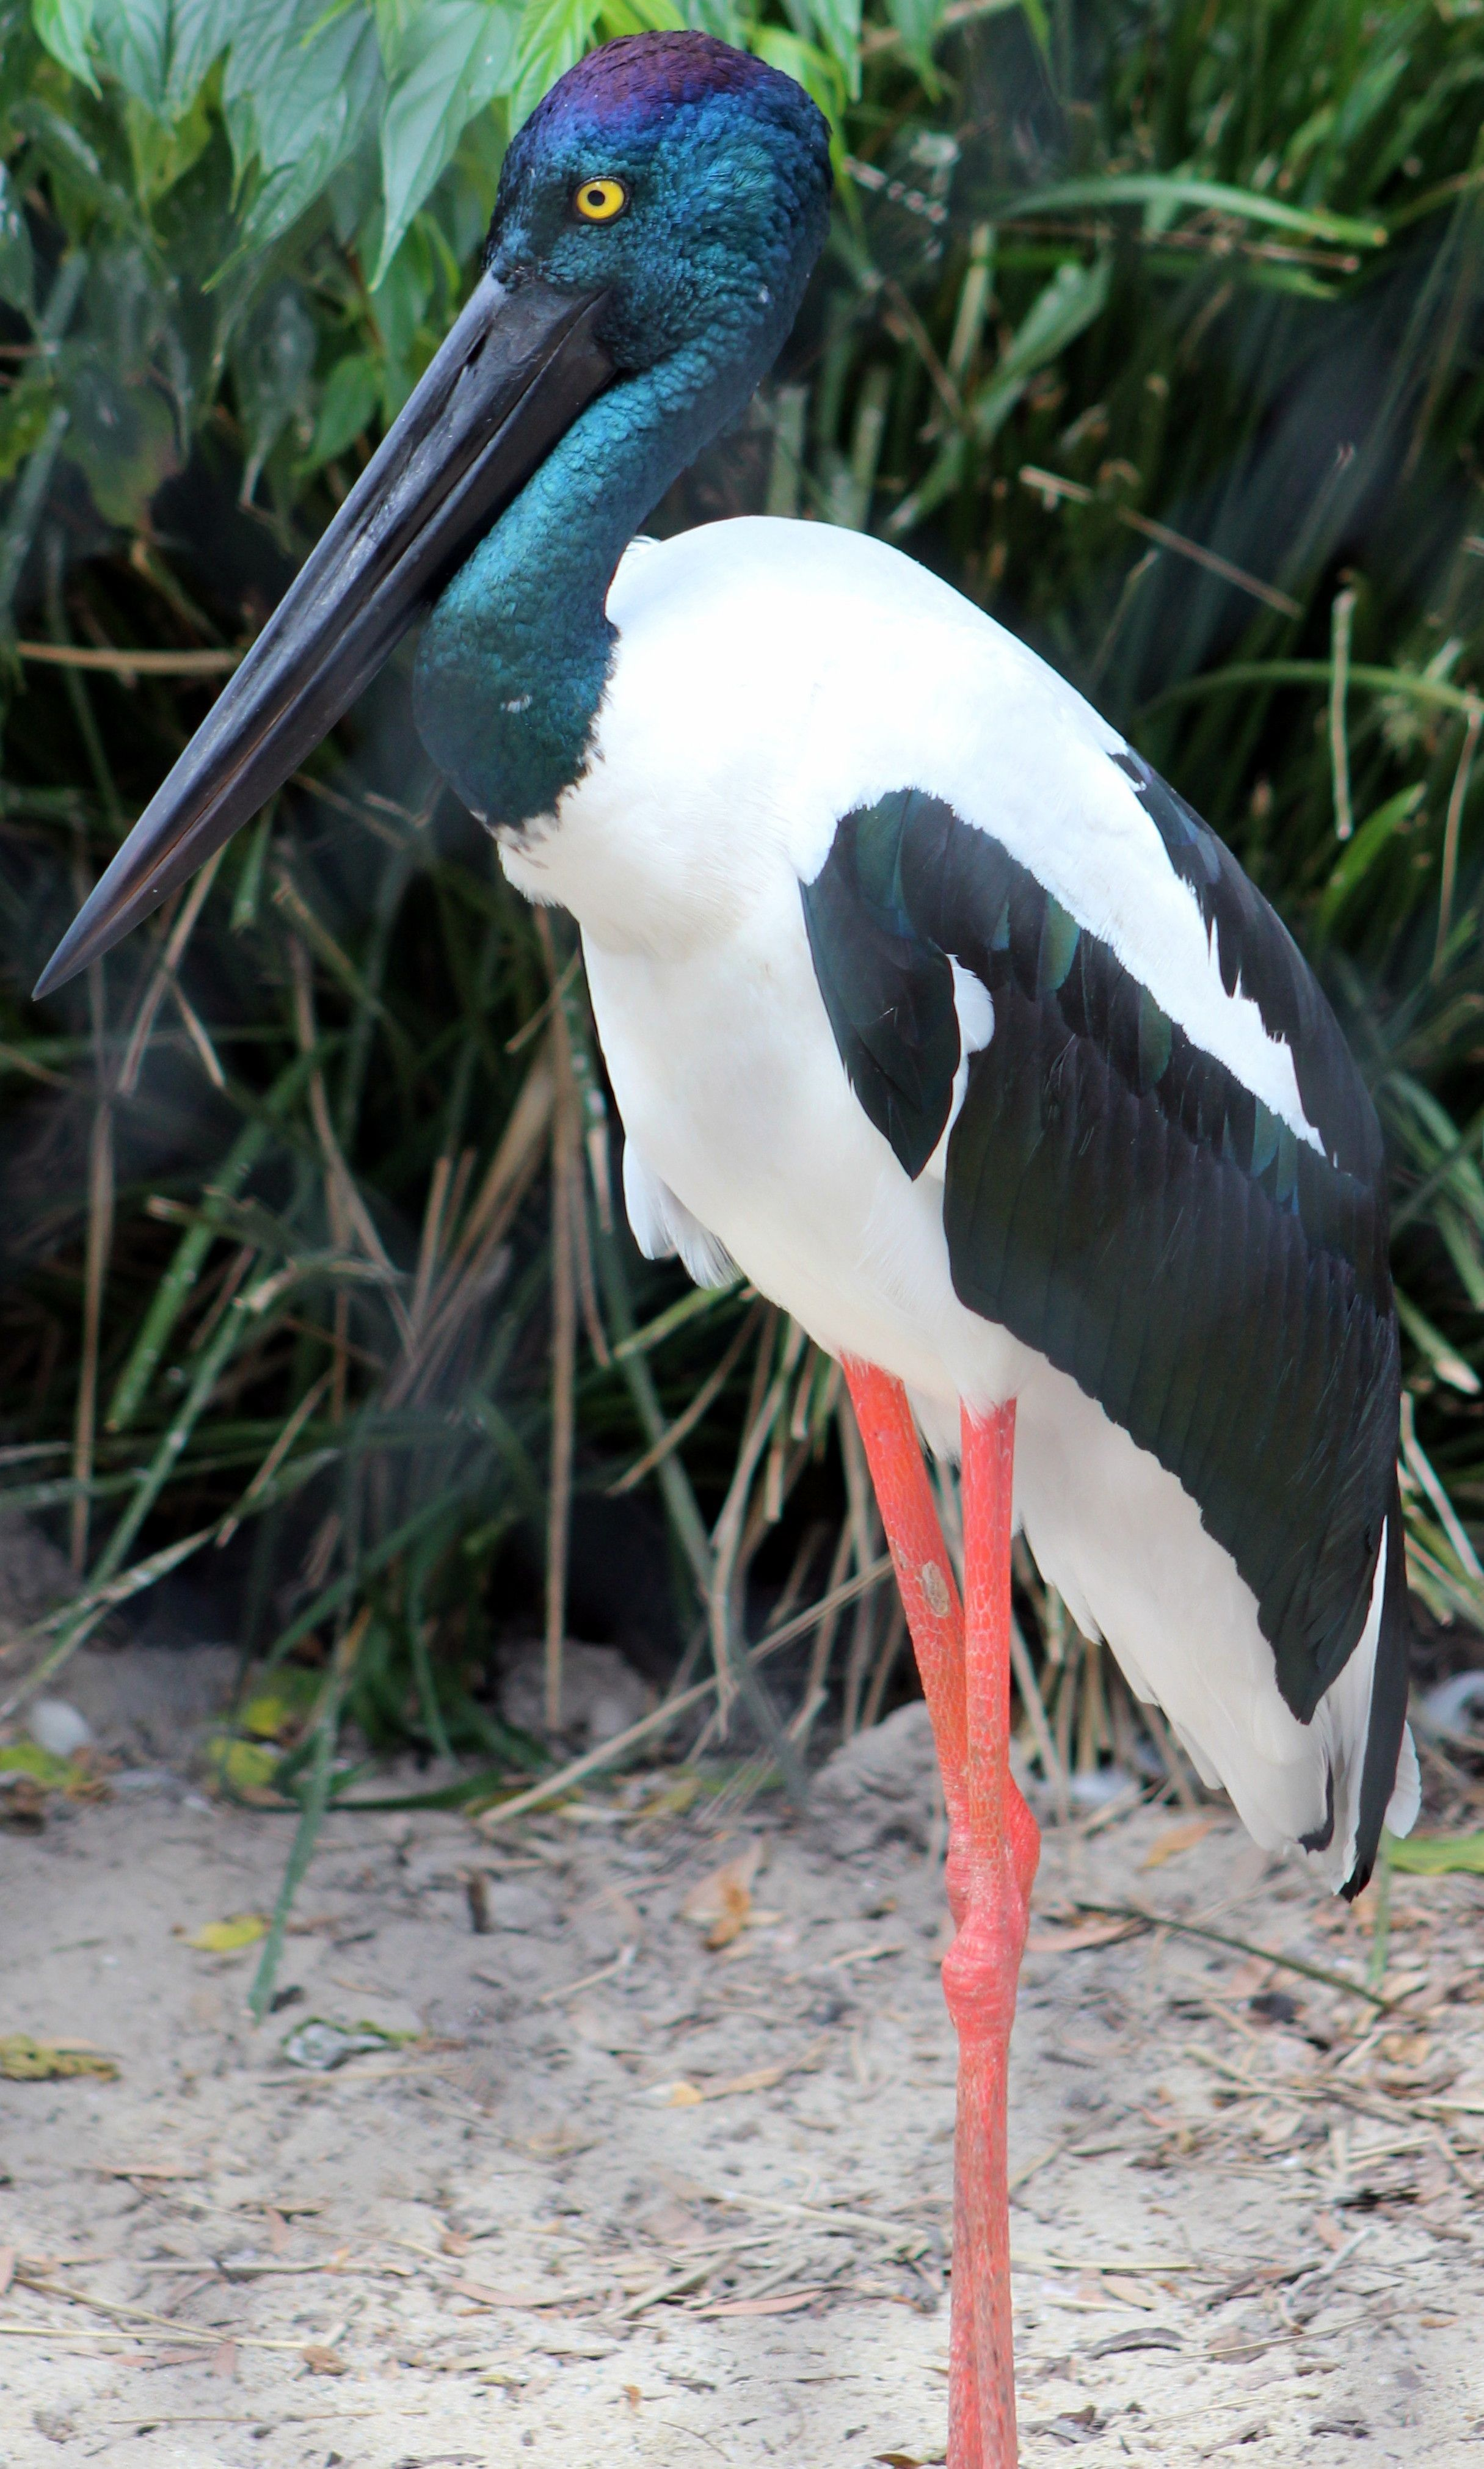 Waterfowl  Its Called A Black Necked Stork, Though The Neck